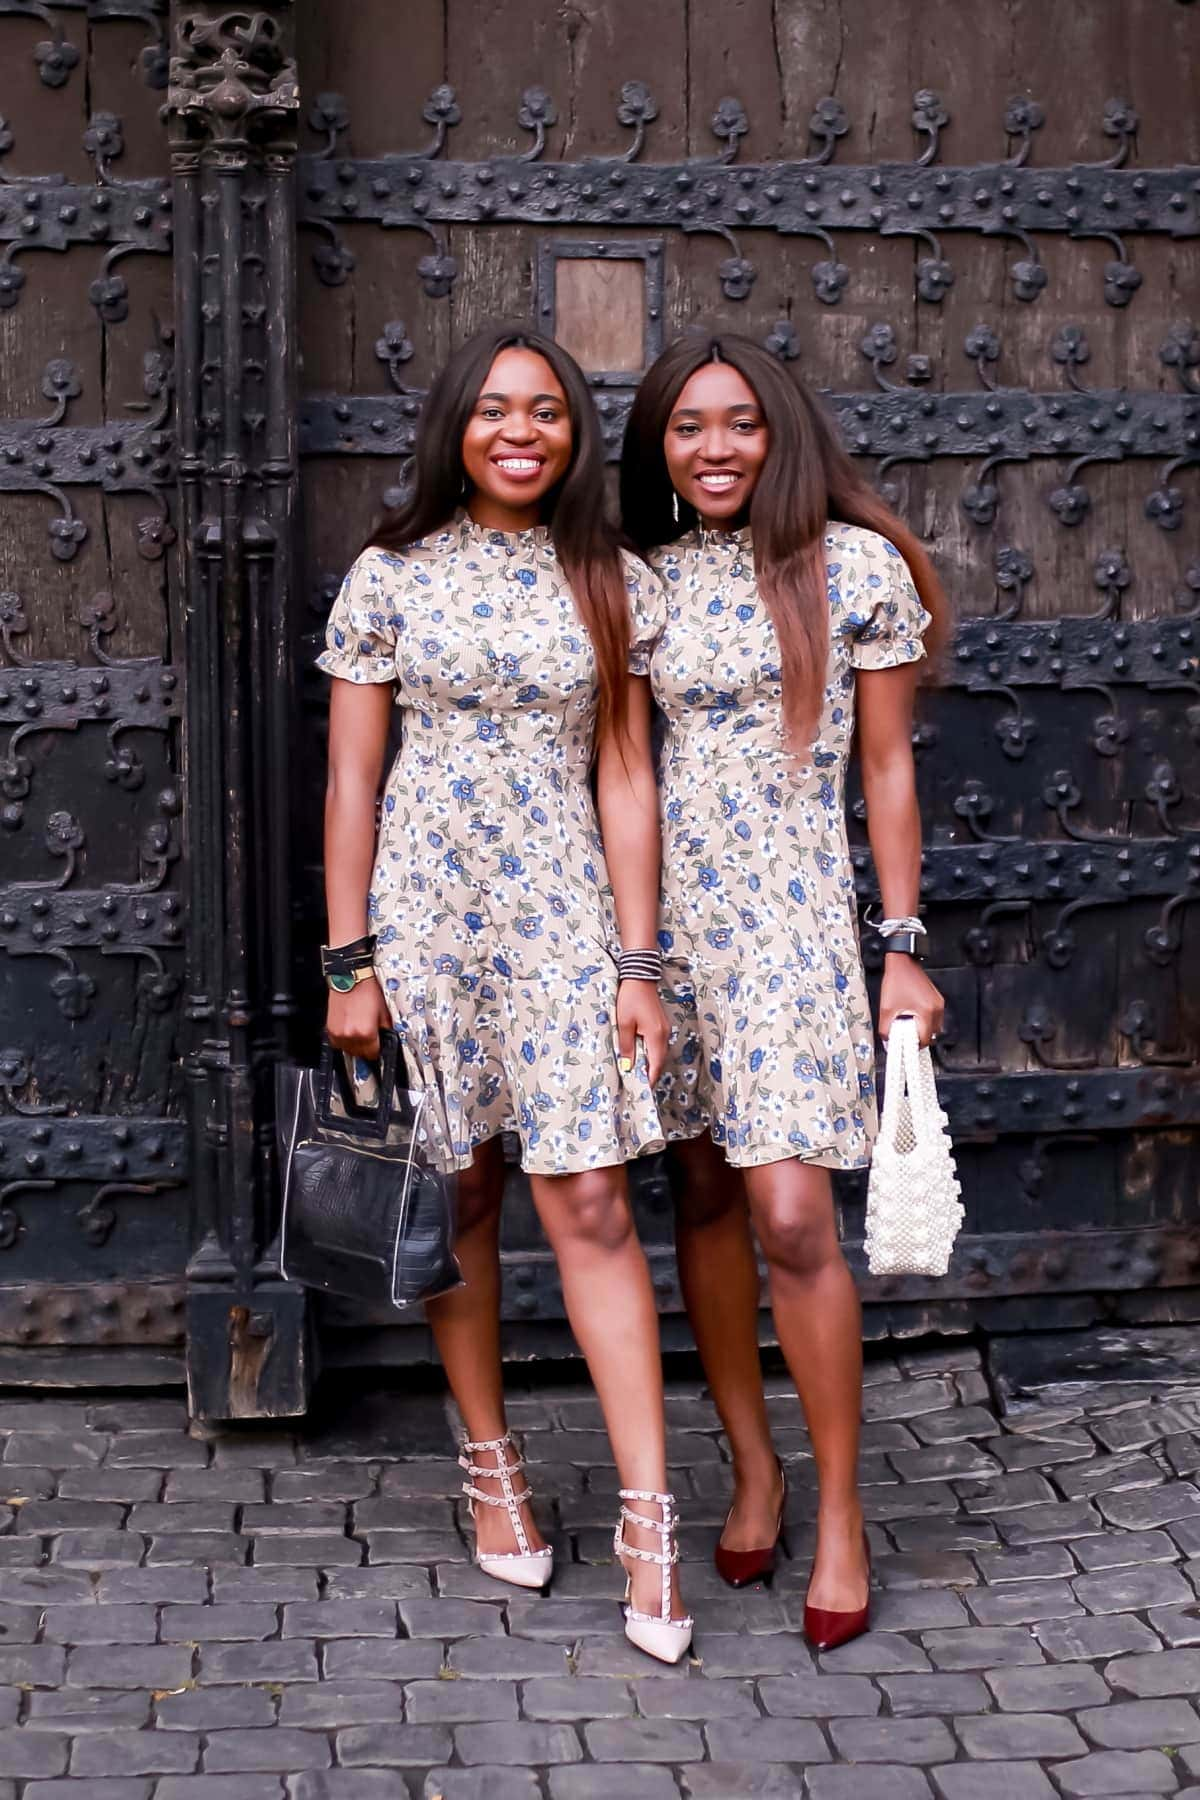 Summer fashion in floral midi dress. Practical everyday style for women on a budget